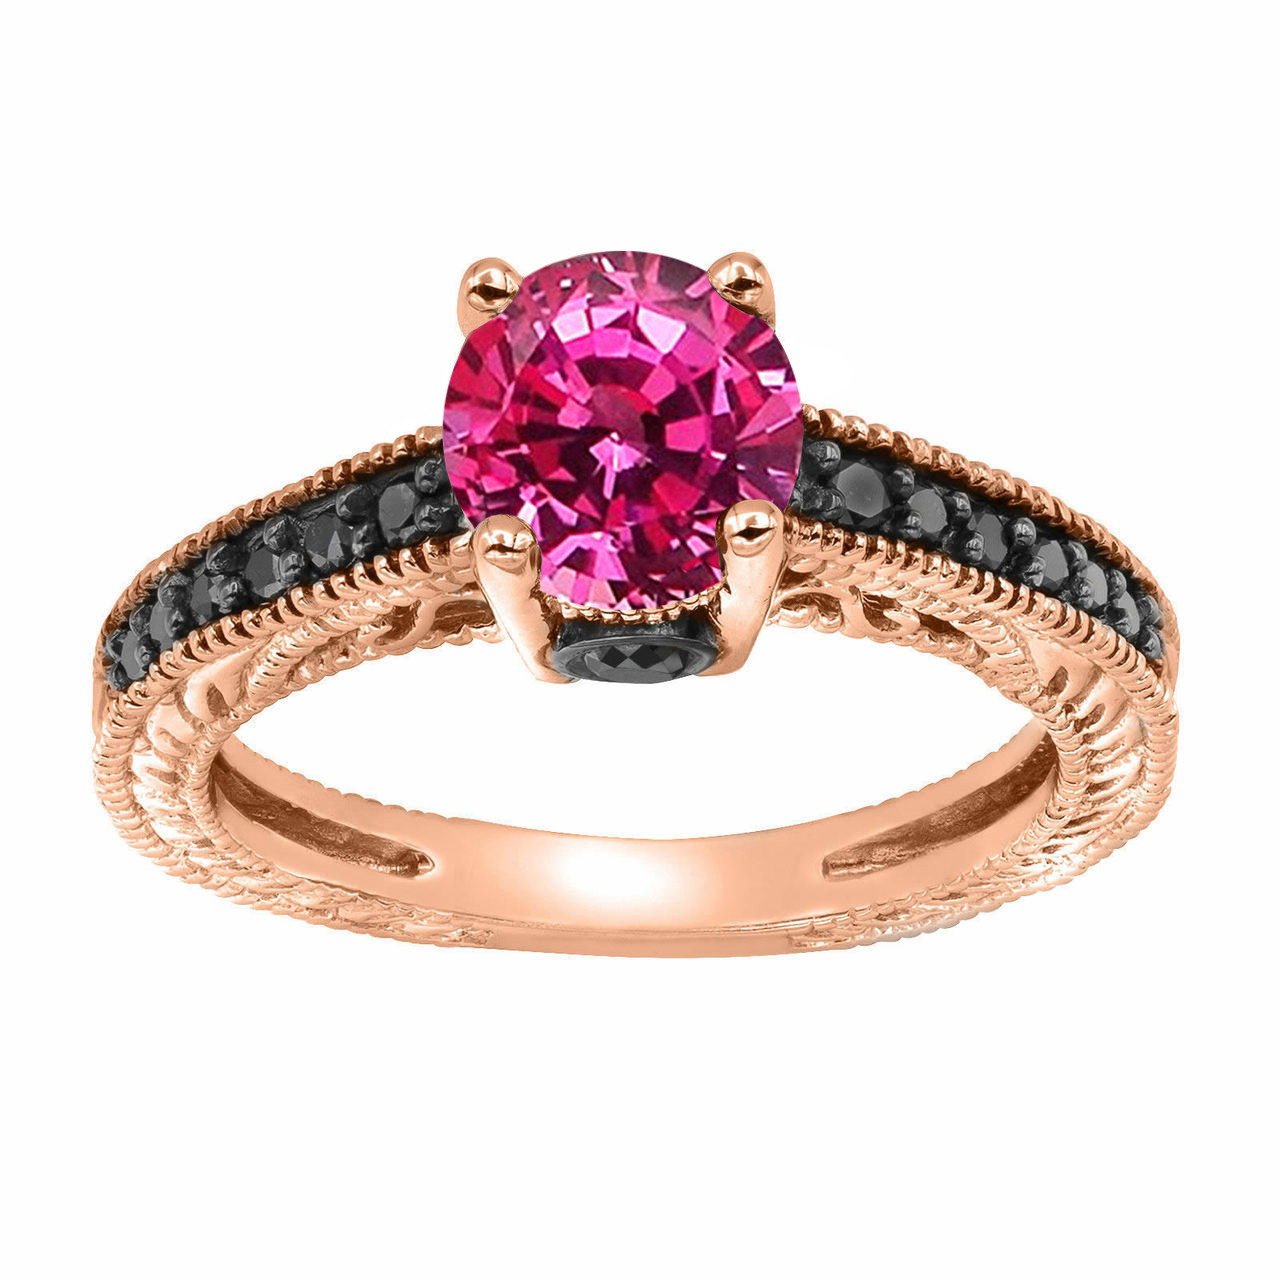 55a7a3832faeb2 1.26 Carat Pink Sapphire Engagement Ring, With Black Diamonds ...